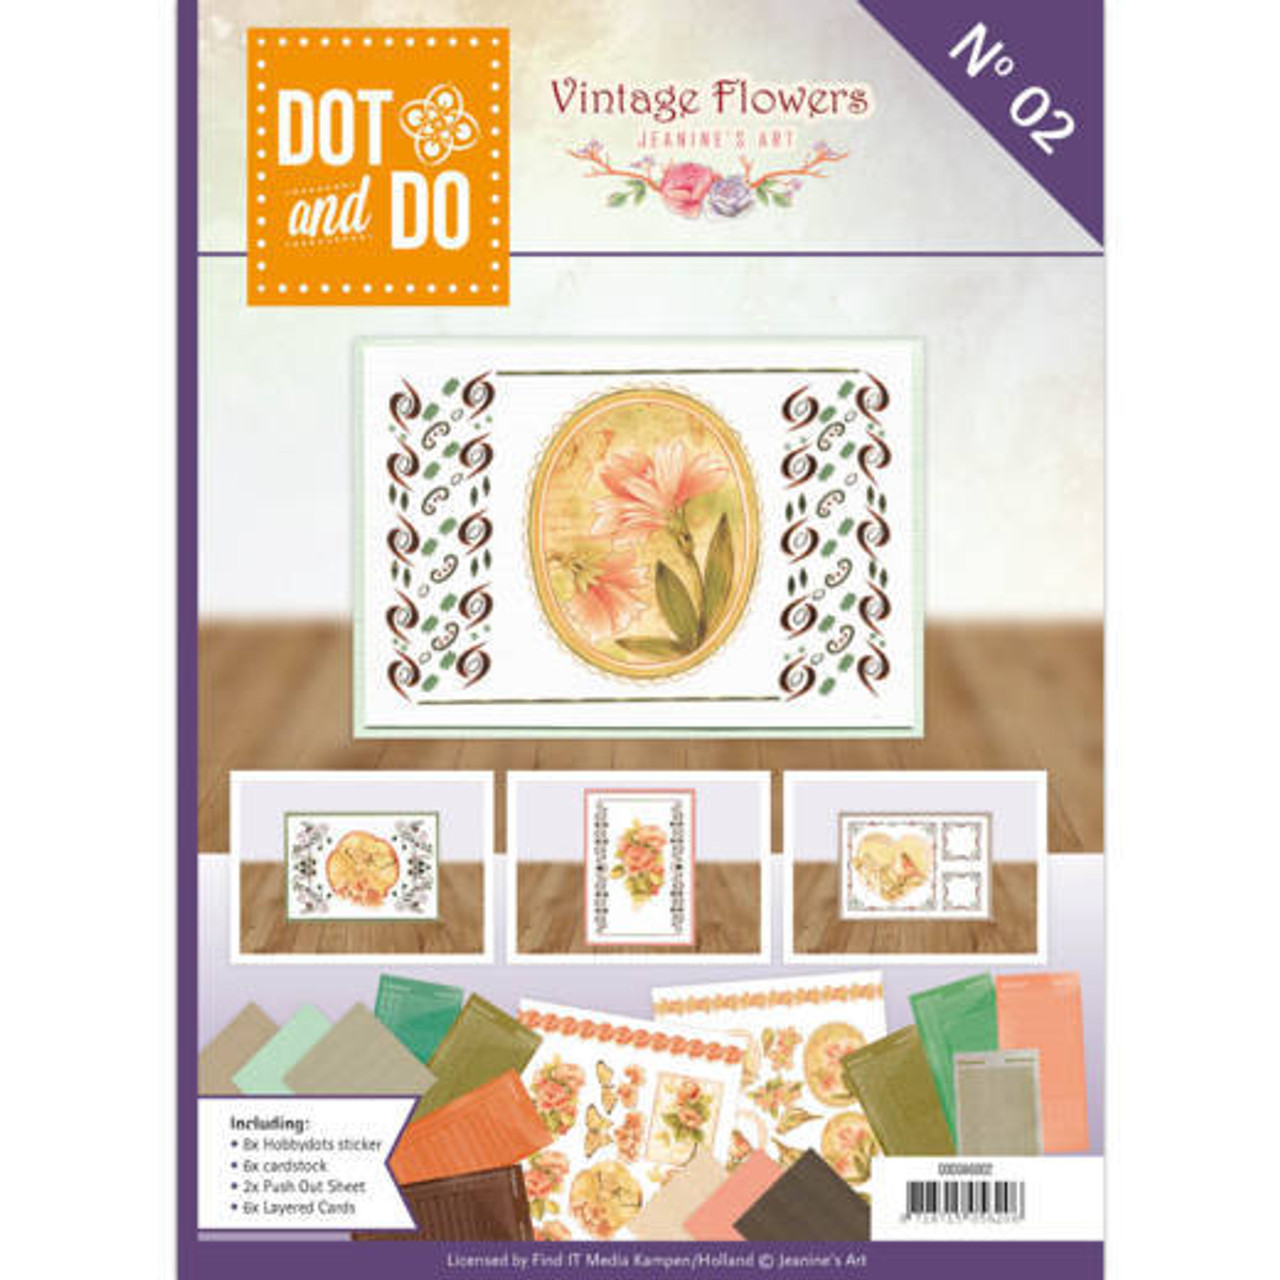 Dot and Do Book Jeanine's Art - A6 Book 2